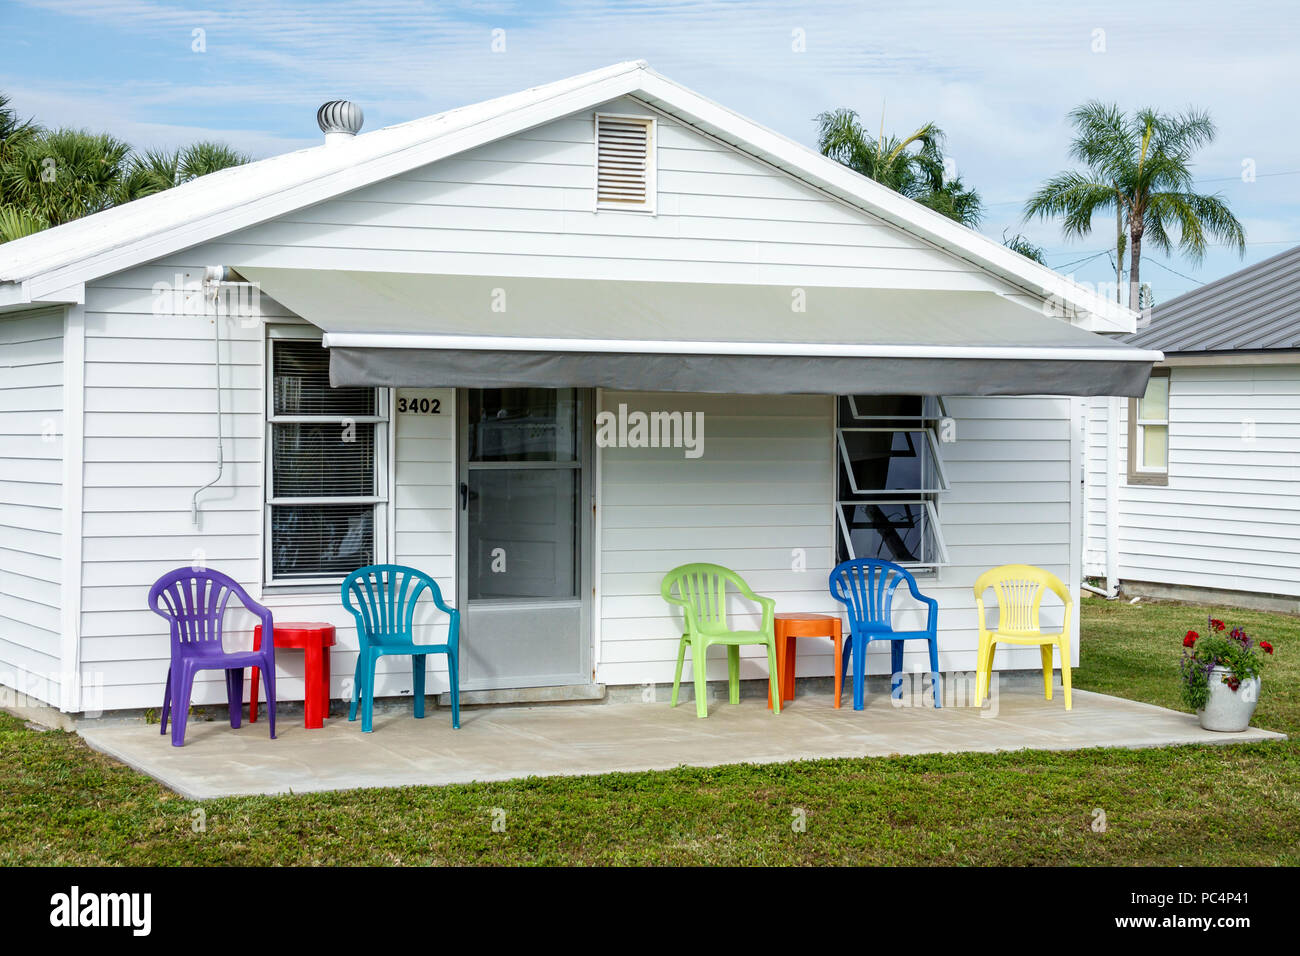 ... Pinecraft Pine Craft Amish Mennonite Snowbird Community House Home  Exterior Porch Shiplap Construction Awning Colorful Plastic Outdoor Chairs  Furniture